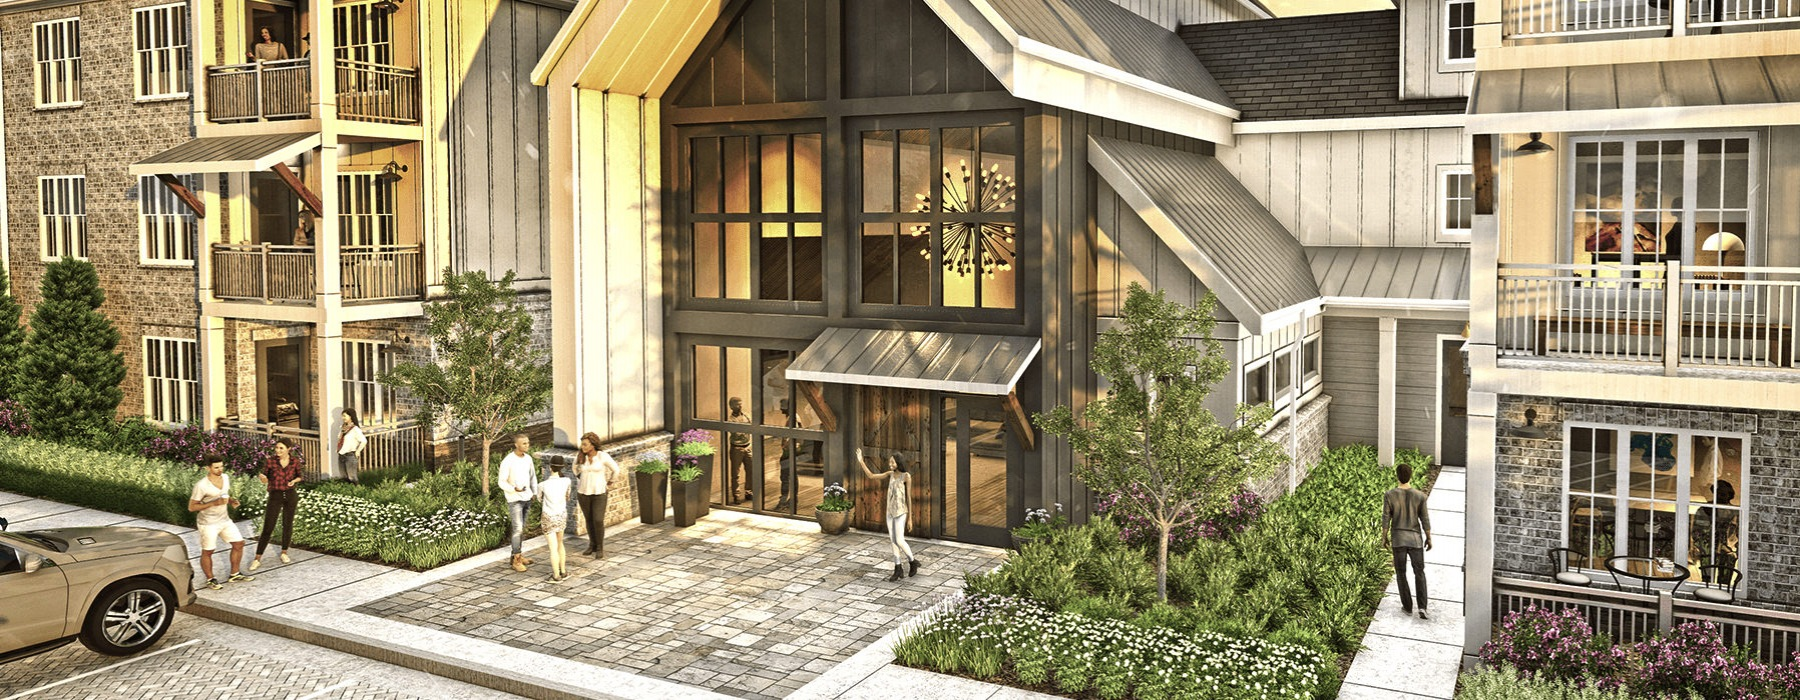 render of townhomes